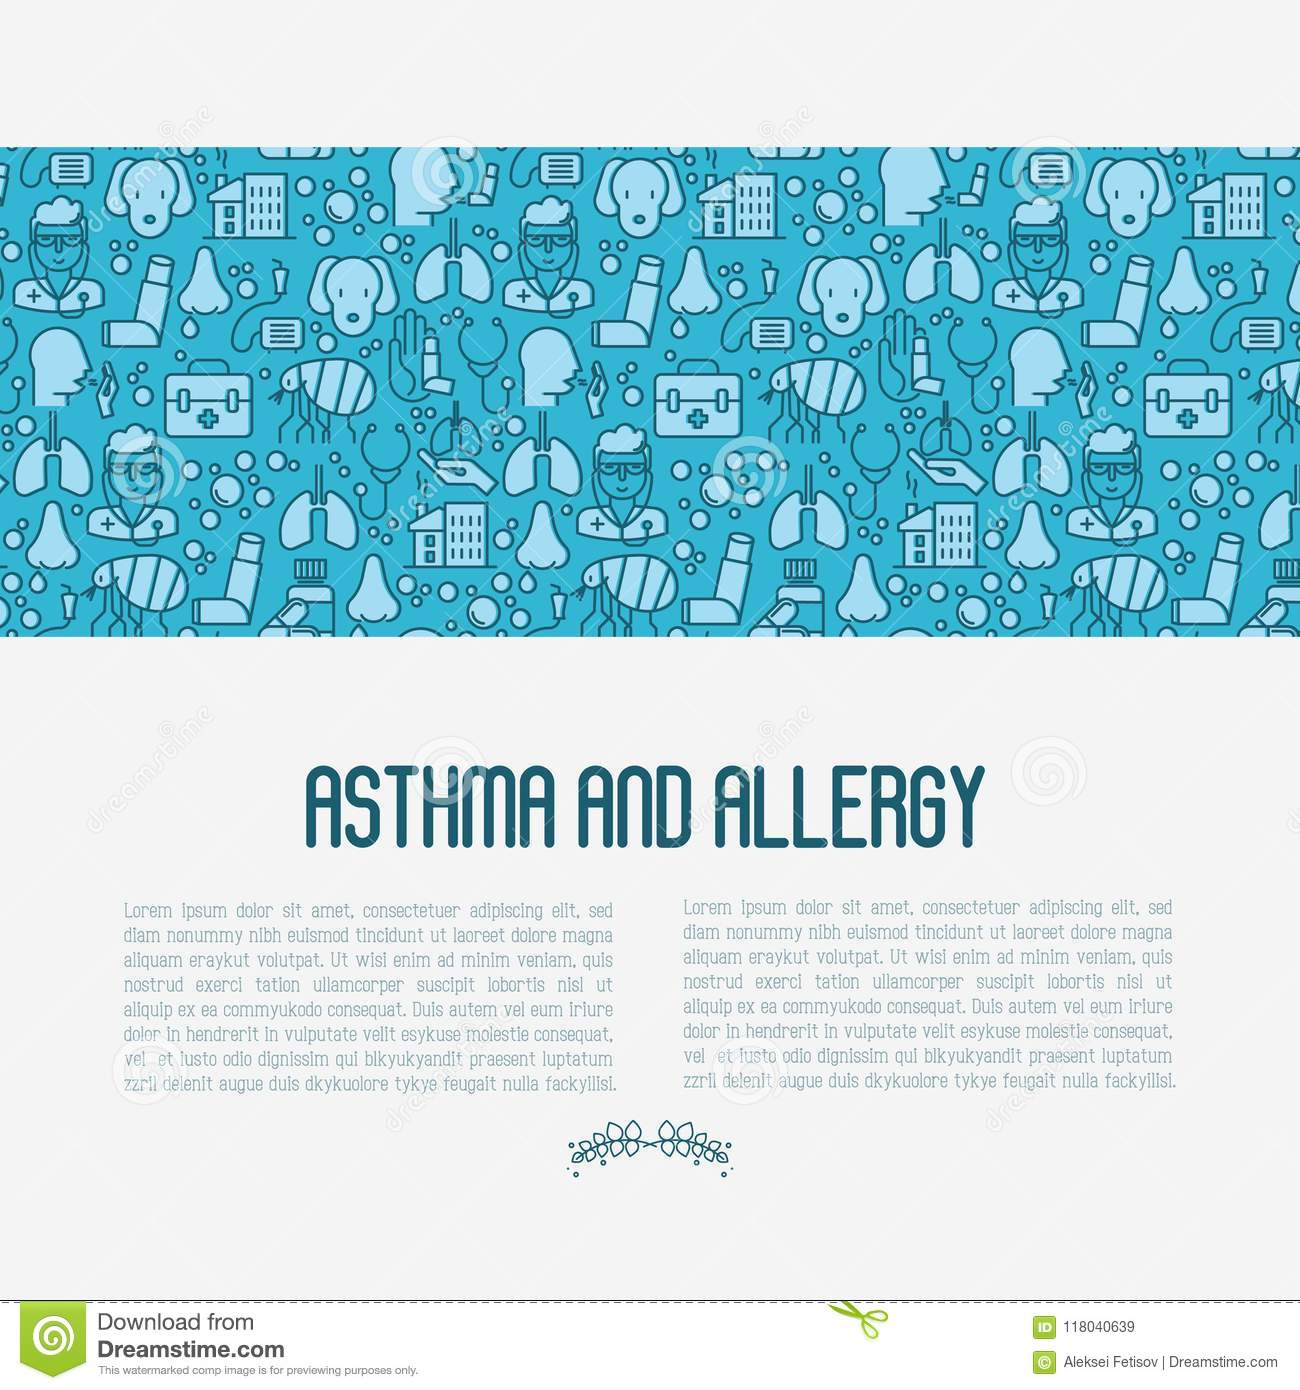 Asthma and allergy concept